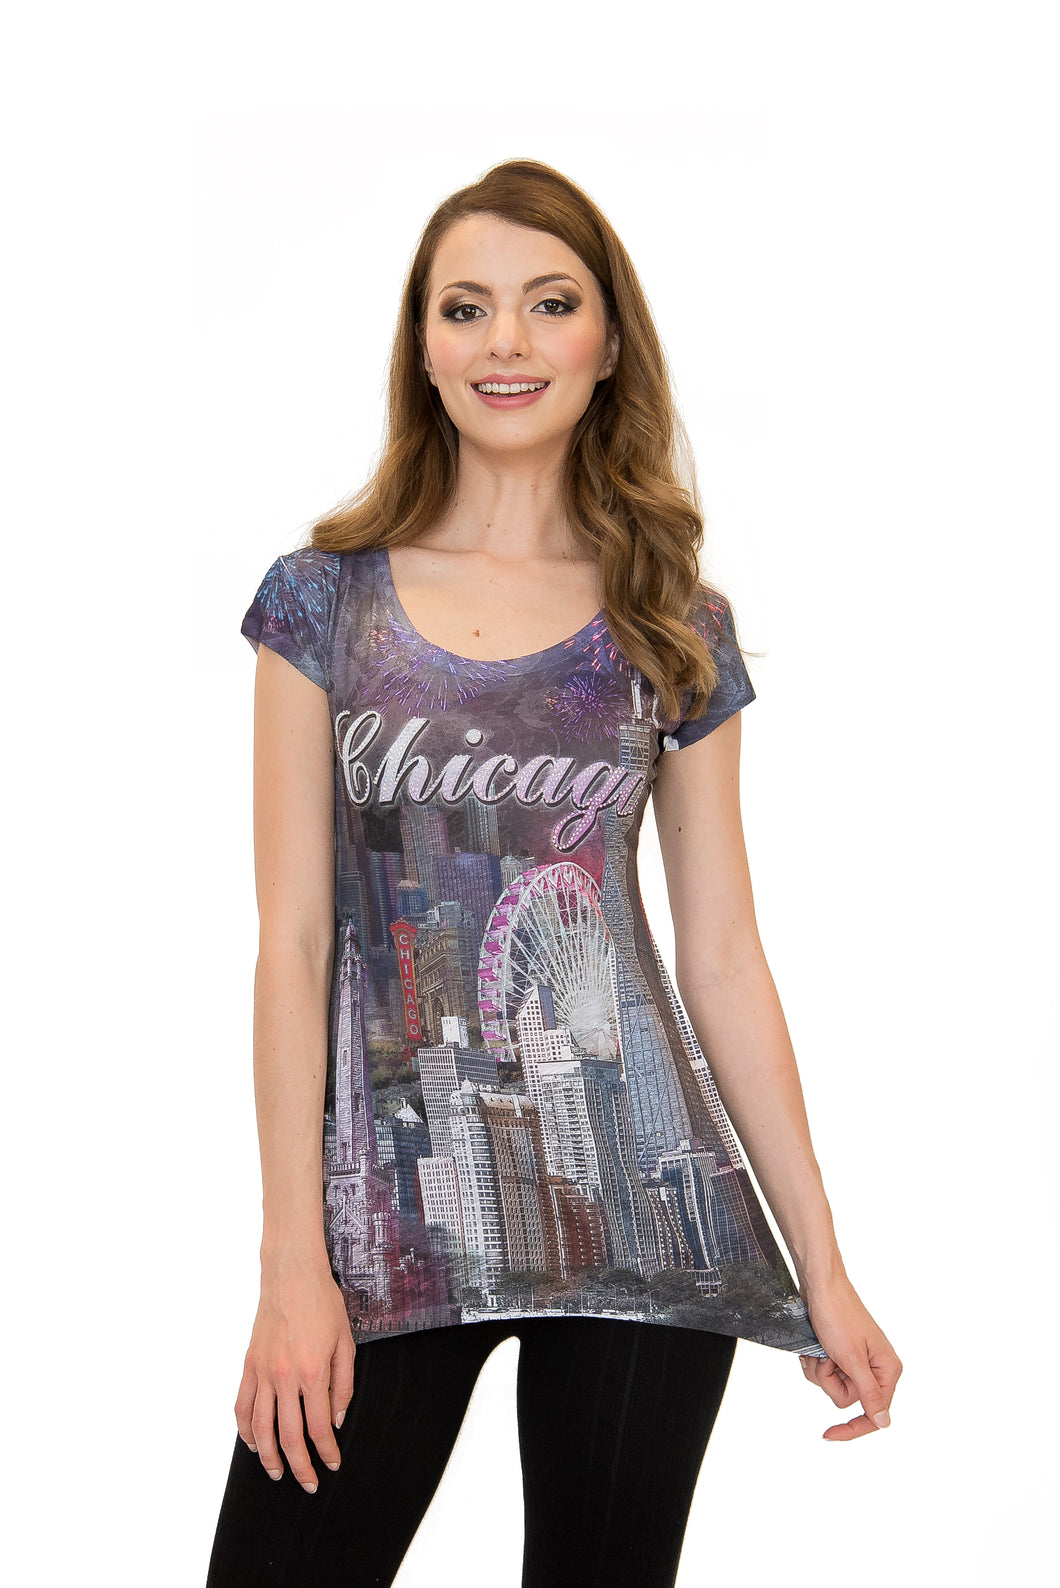 Sweet Gisele Chicago City Skyline Print | Rhinestone-Embellished Souvenir | Womens Tunic T-Shirt w/Bling